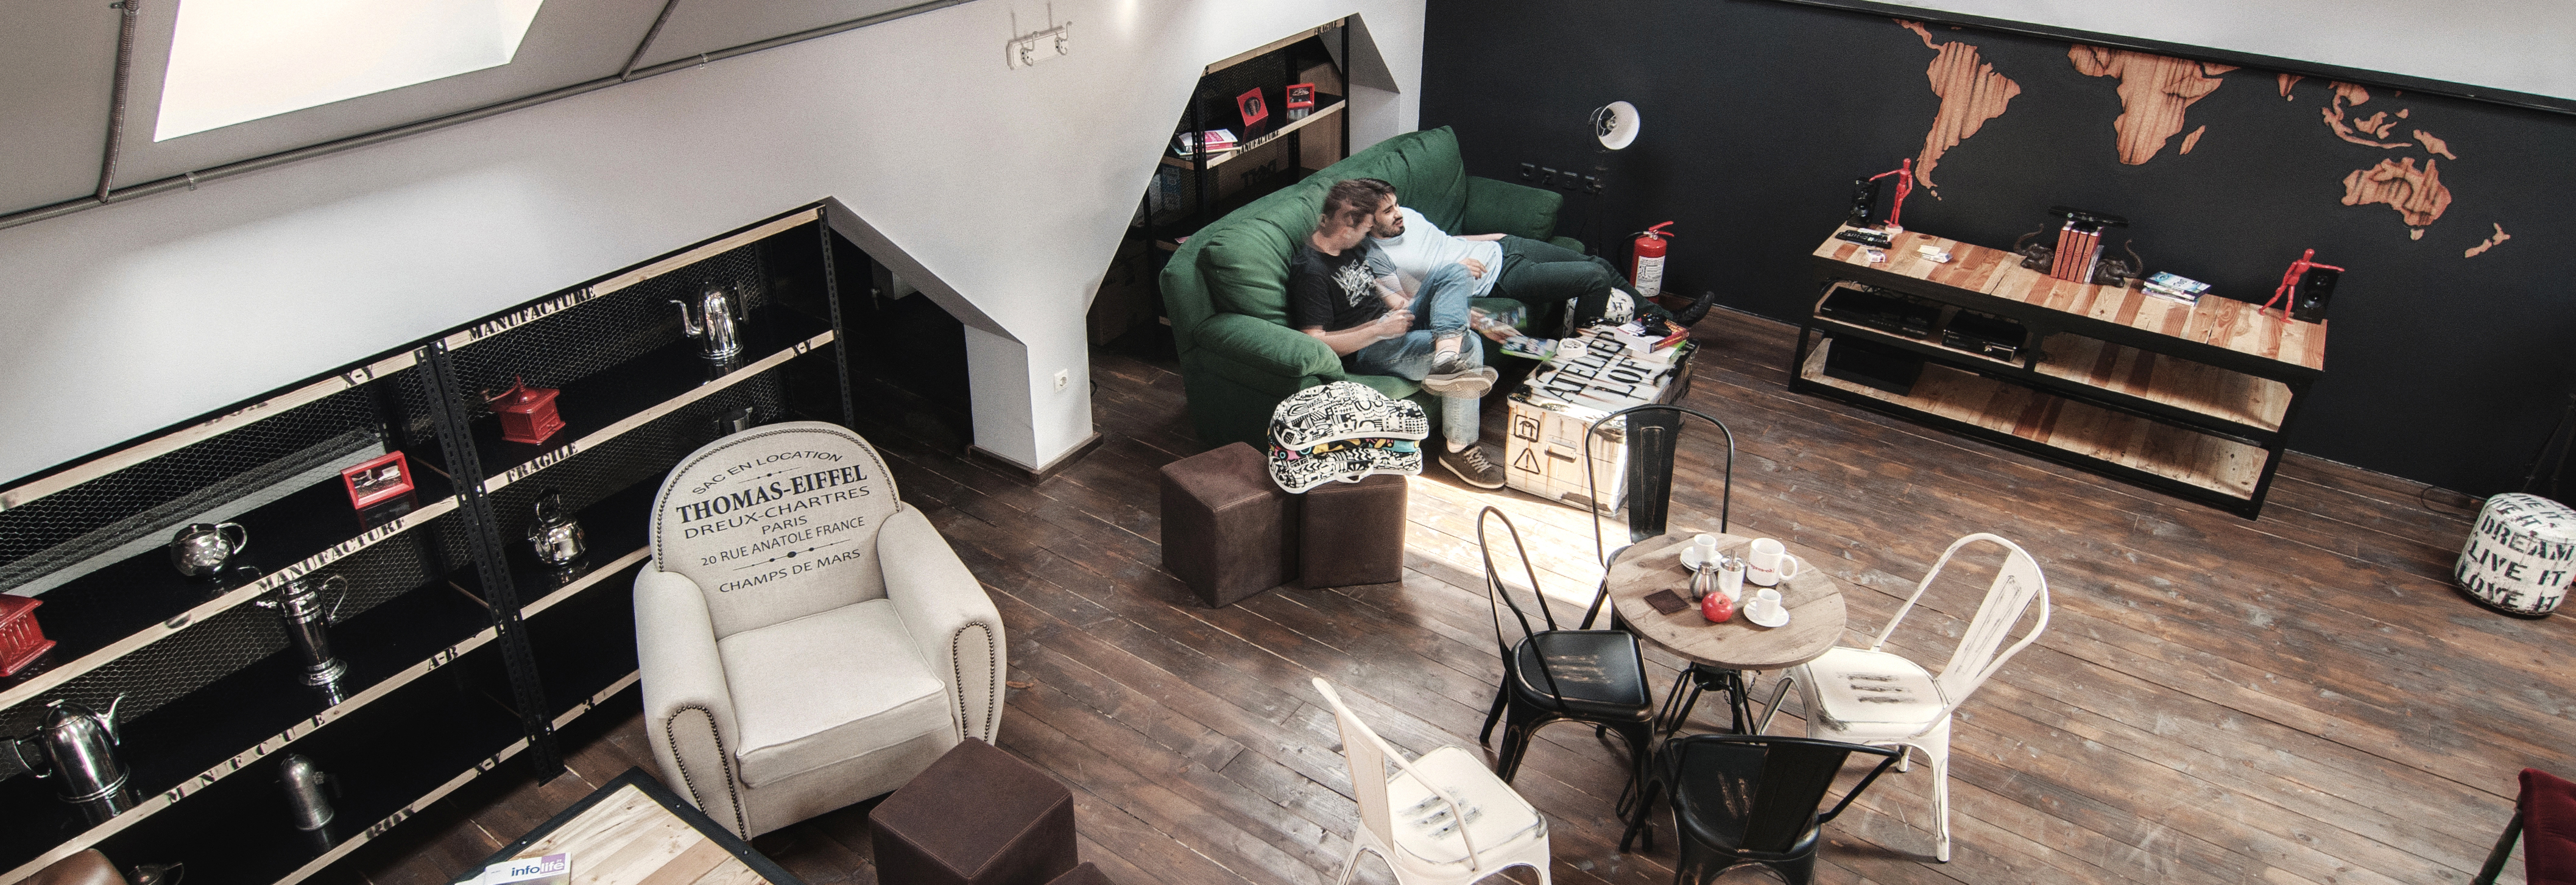 timisoara-espresoh-attic-open-space-coffe-shop-office-people